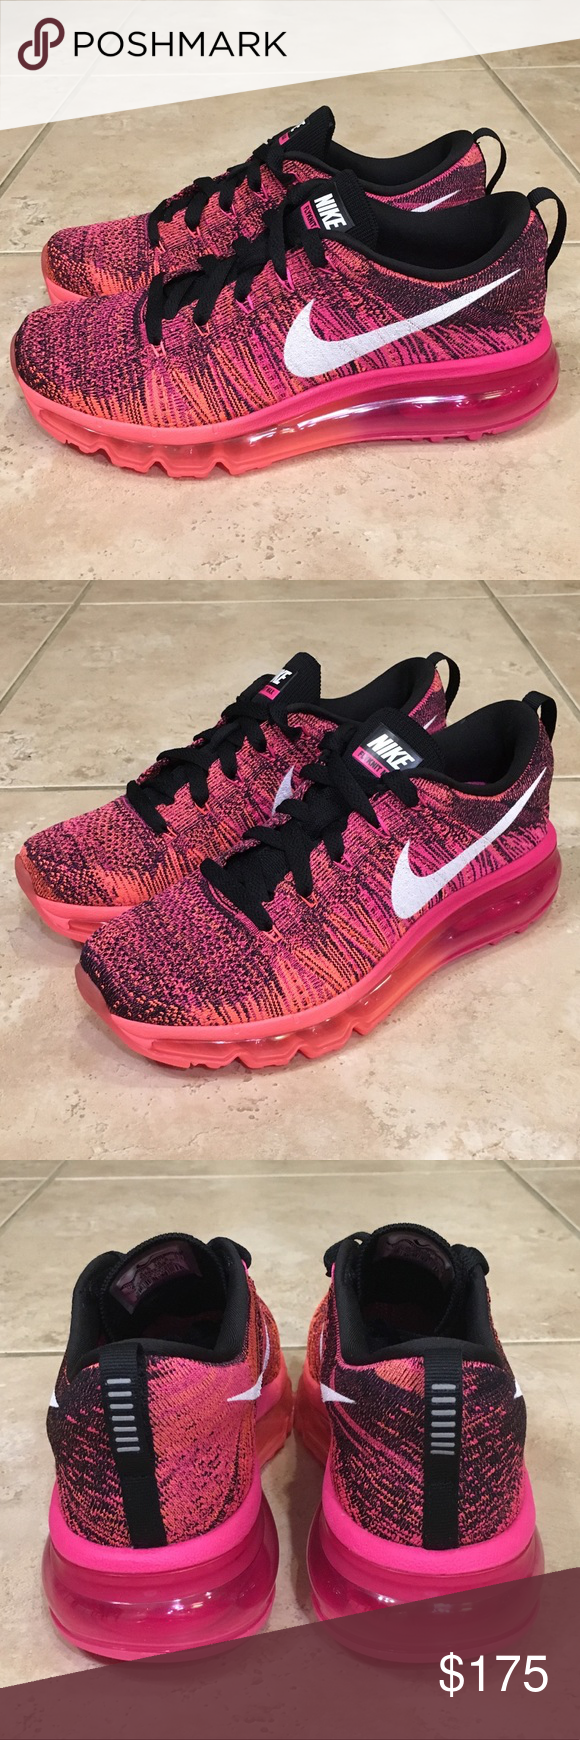 Nike Flyknit Air Max 2015 Pink Lava Running Shoes Brand New